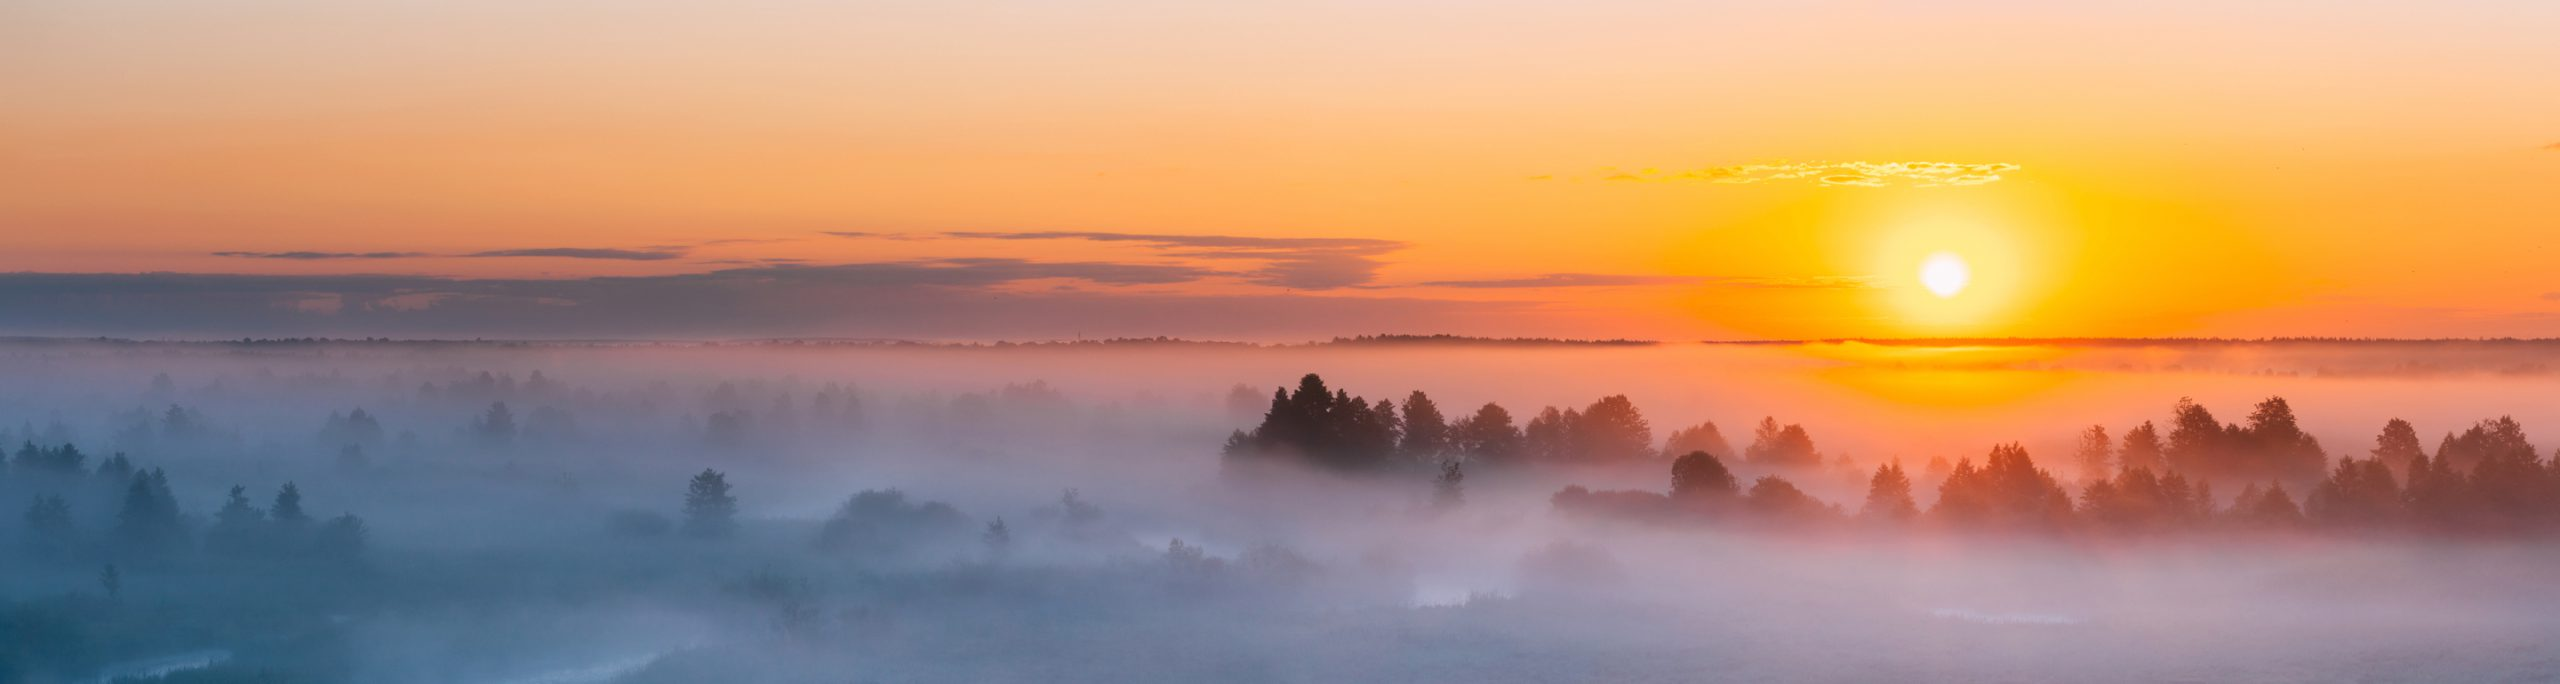 sunset over fog